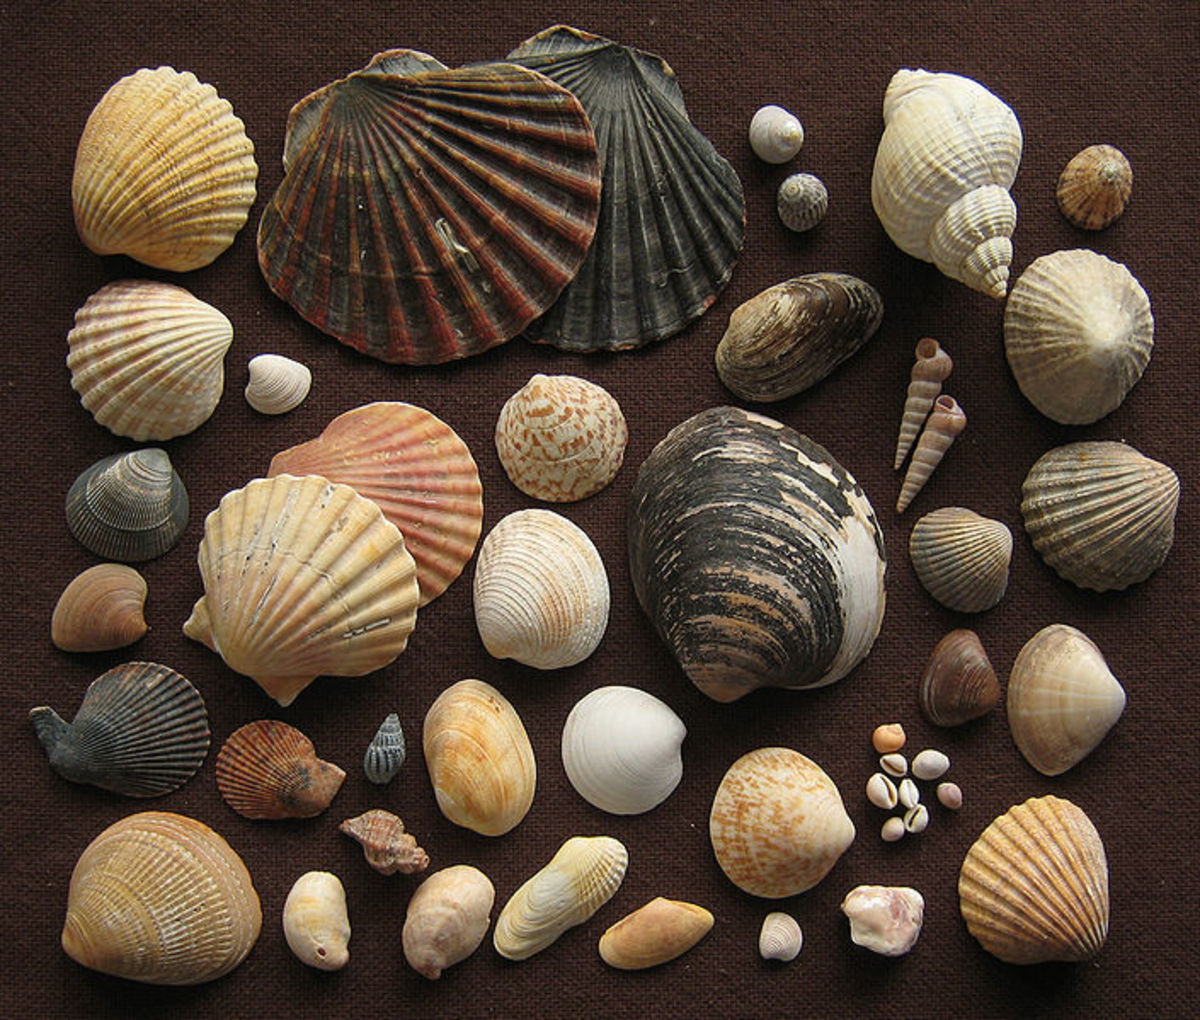 Types of seashells found along the beaches of Naples, Florida.